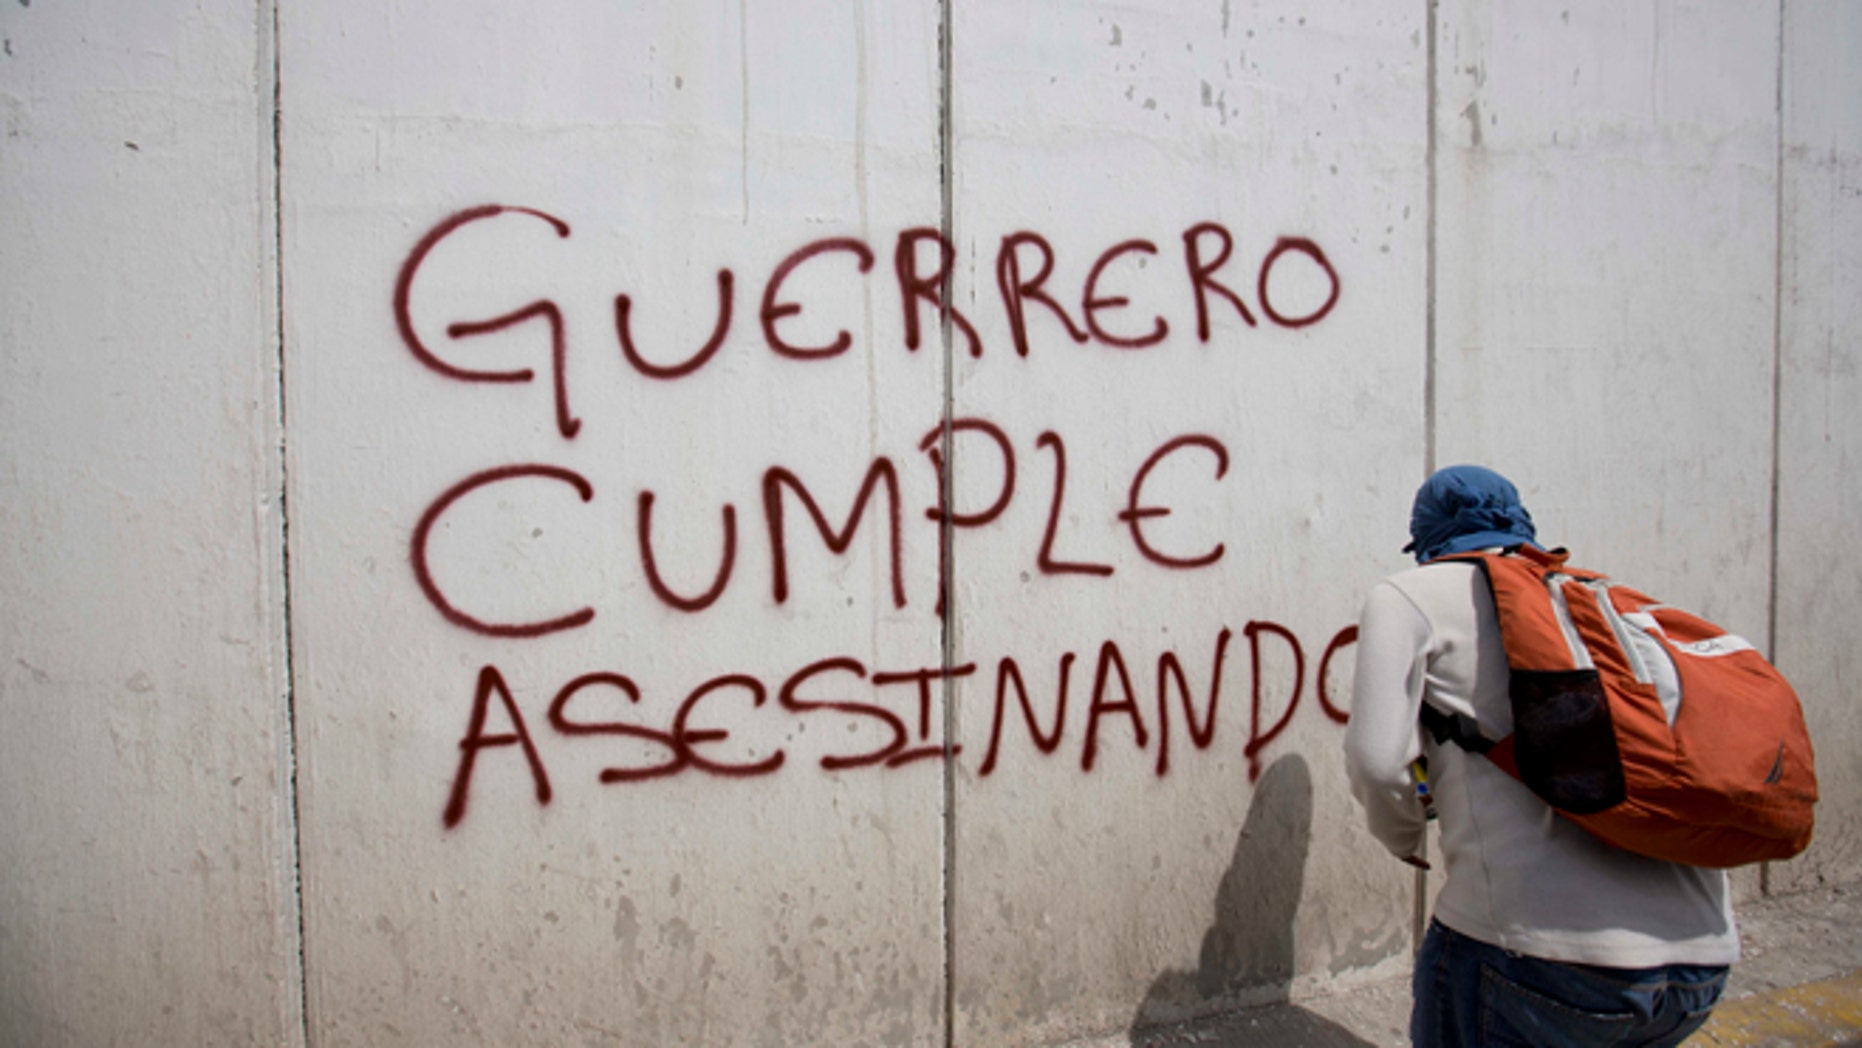 "A protester sprays a wall with the words in Spanish ""Guerrero follows through with murder"" at a demonstration against the disappearance of 43 students from the Isidro Burgos rural teachers college in Chilpancingo, in Guerrero state, Mexico, Wednesday, Oct. 8, 2014. Federal officials say they still have no explanation for violence Sept. 26 that killed six, wounded at least 25 and left so many missing. Also, investigators still had no word on whether the 28 bodies found in a mass grave last weekend included some of the missing students. (AP Photo/Eduardo Verdugo)"